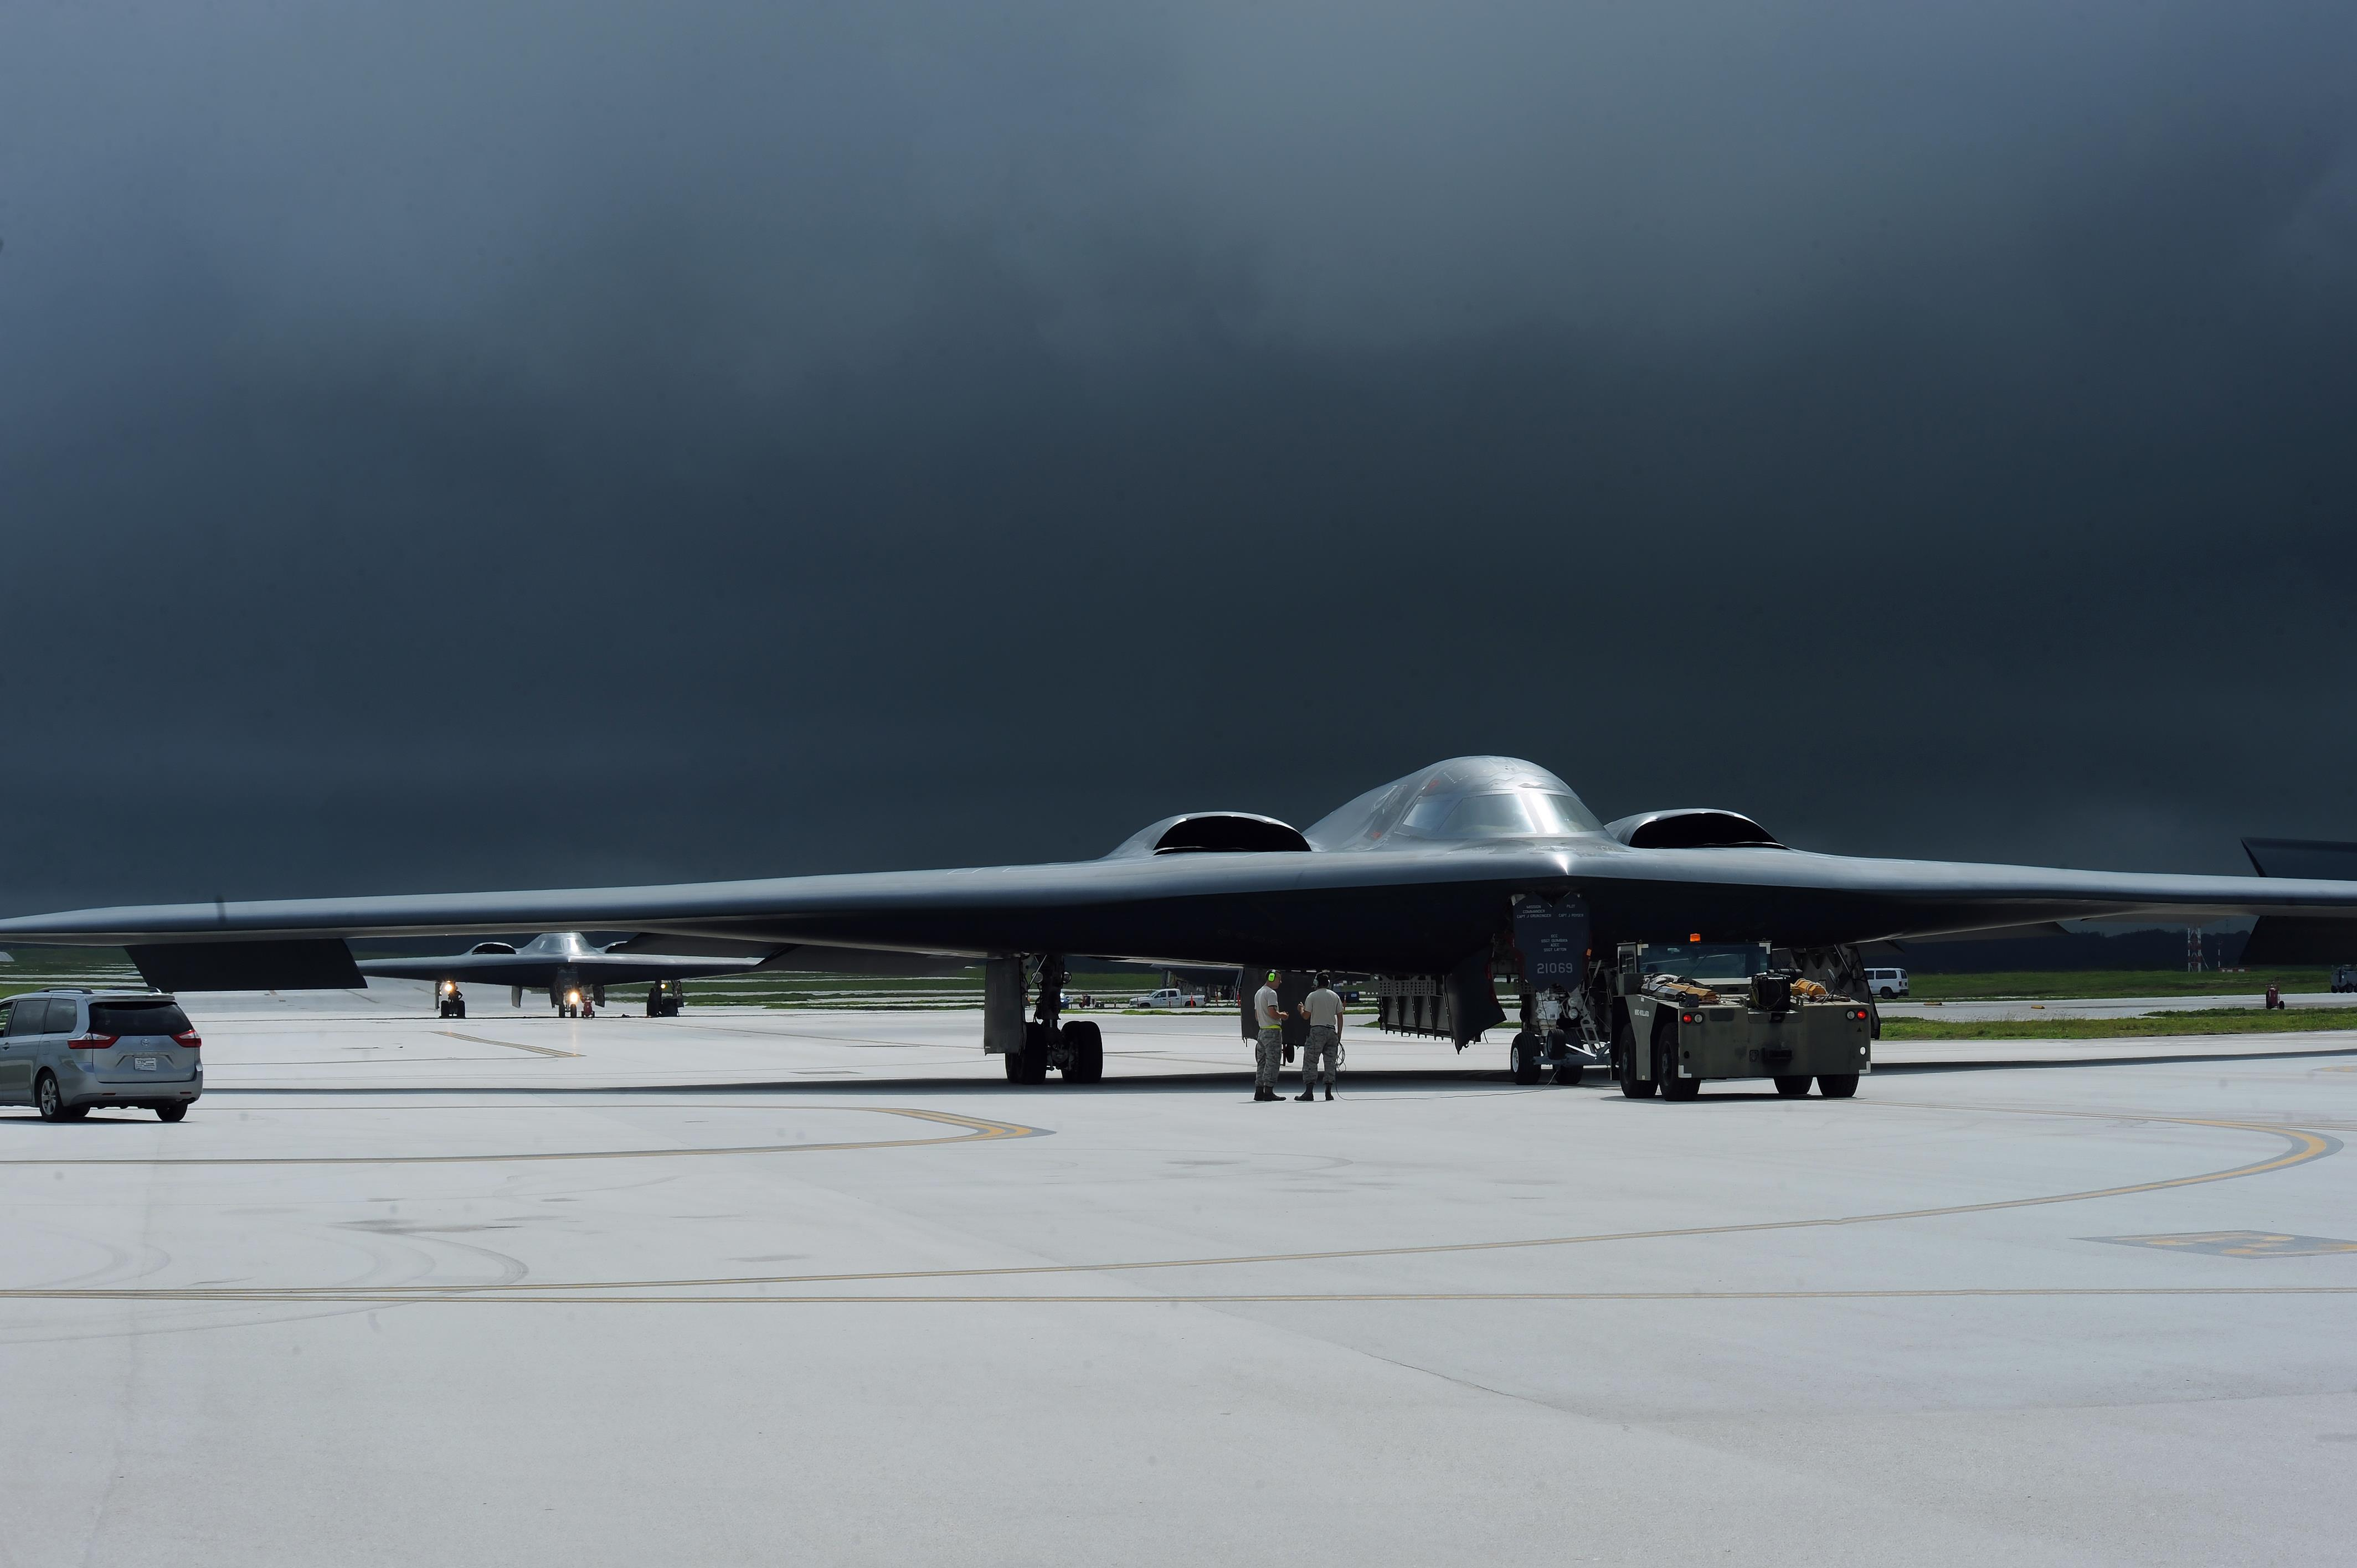 B-2 Spirits land for aircraft recovery as storm clouds gather